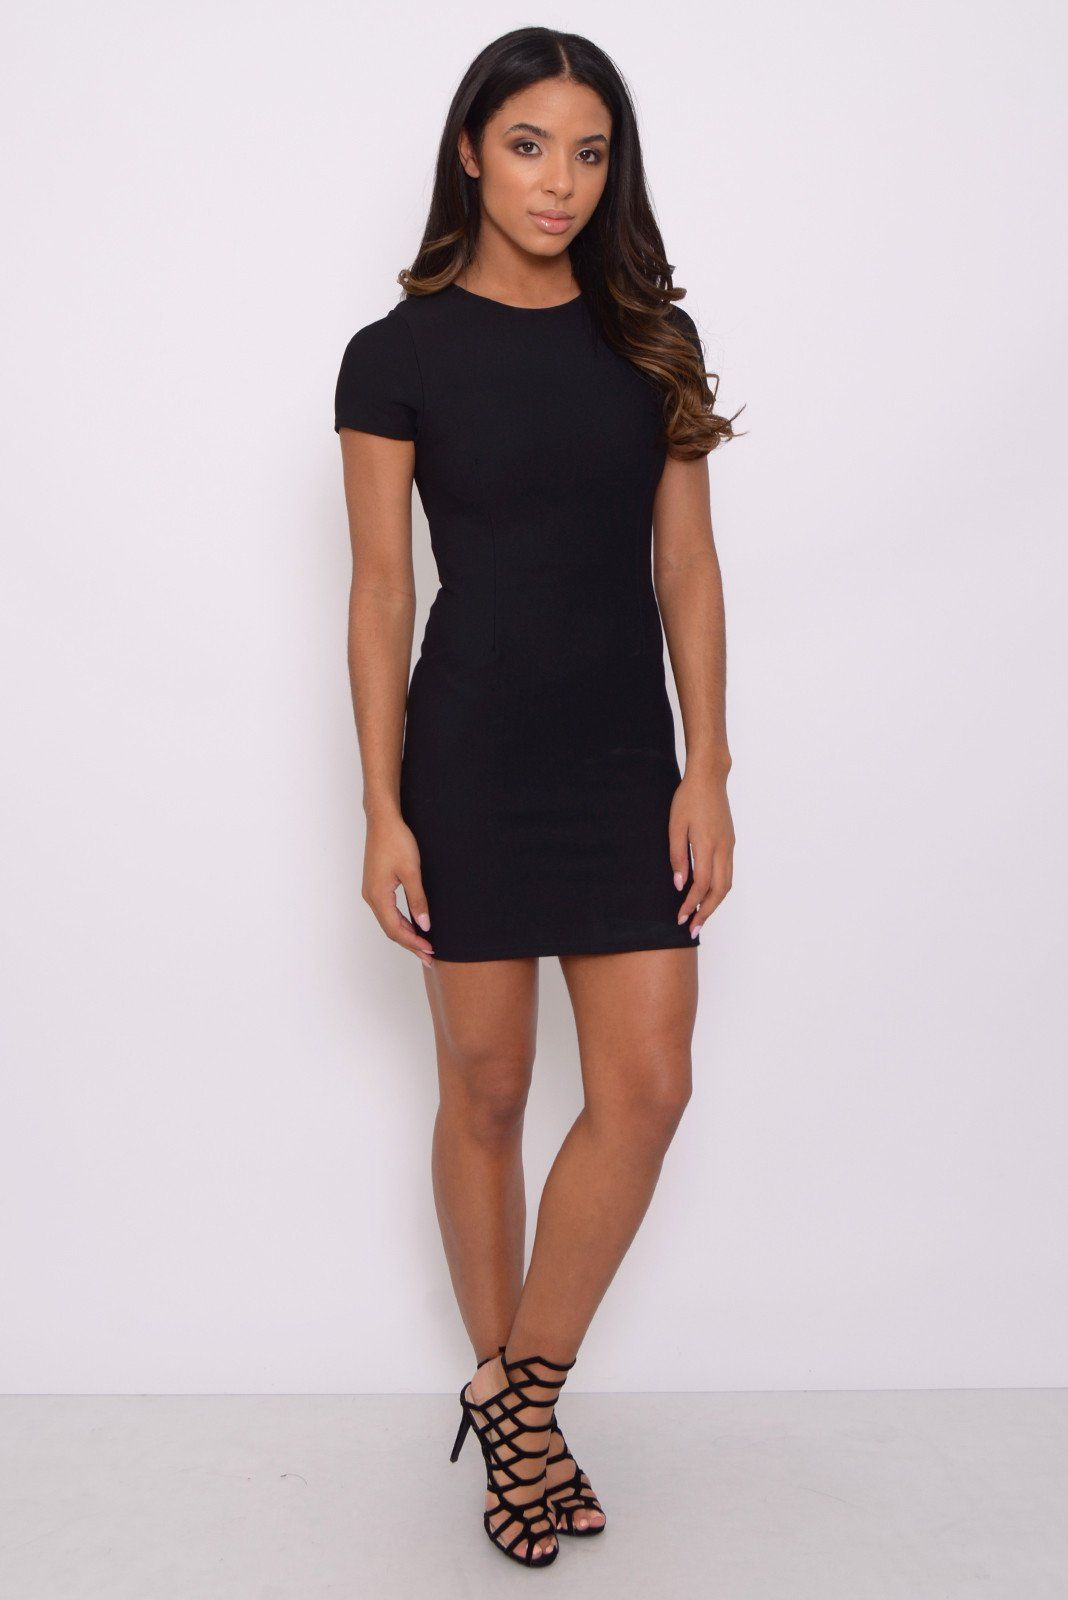 Red herring lace bodycon dress